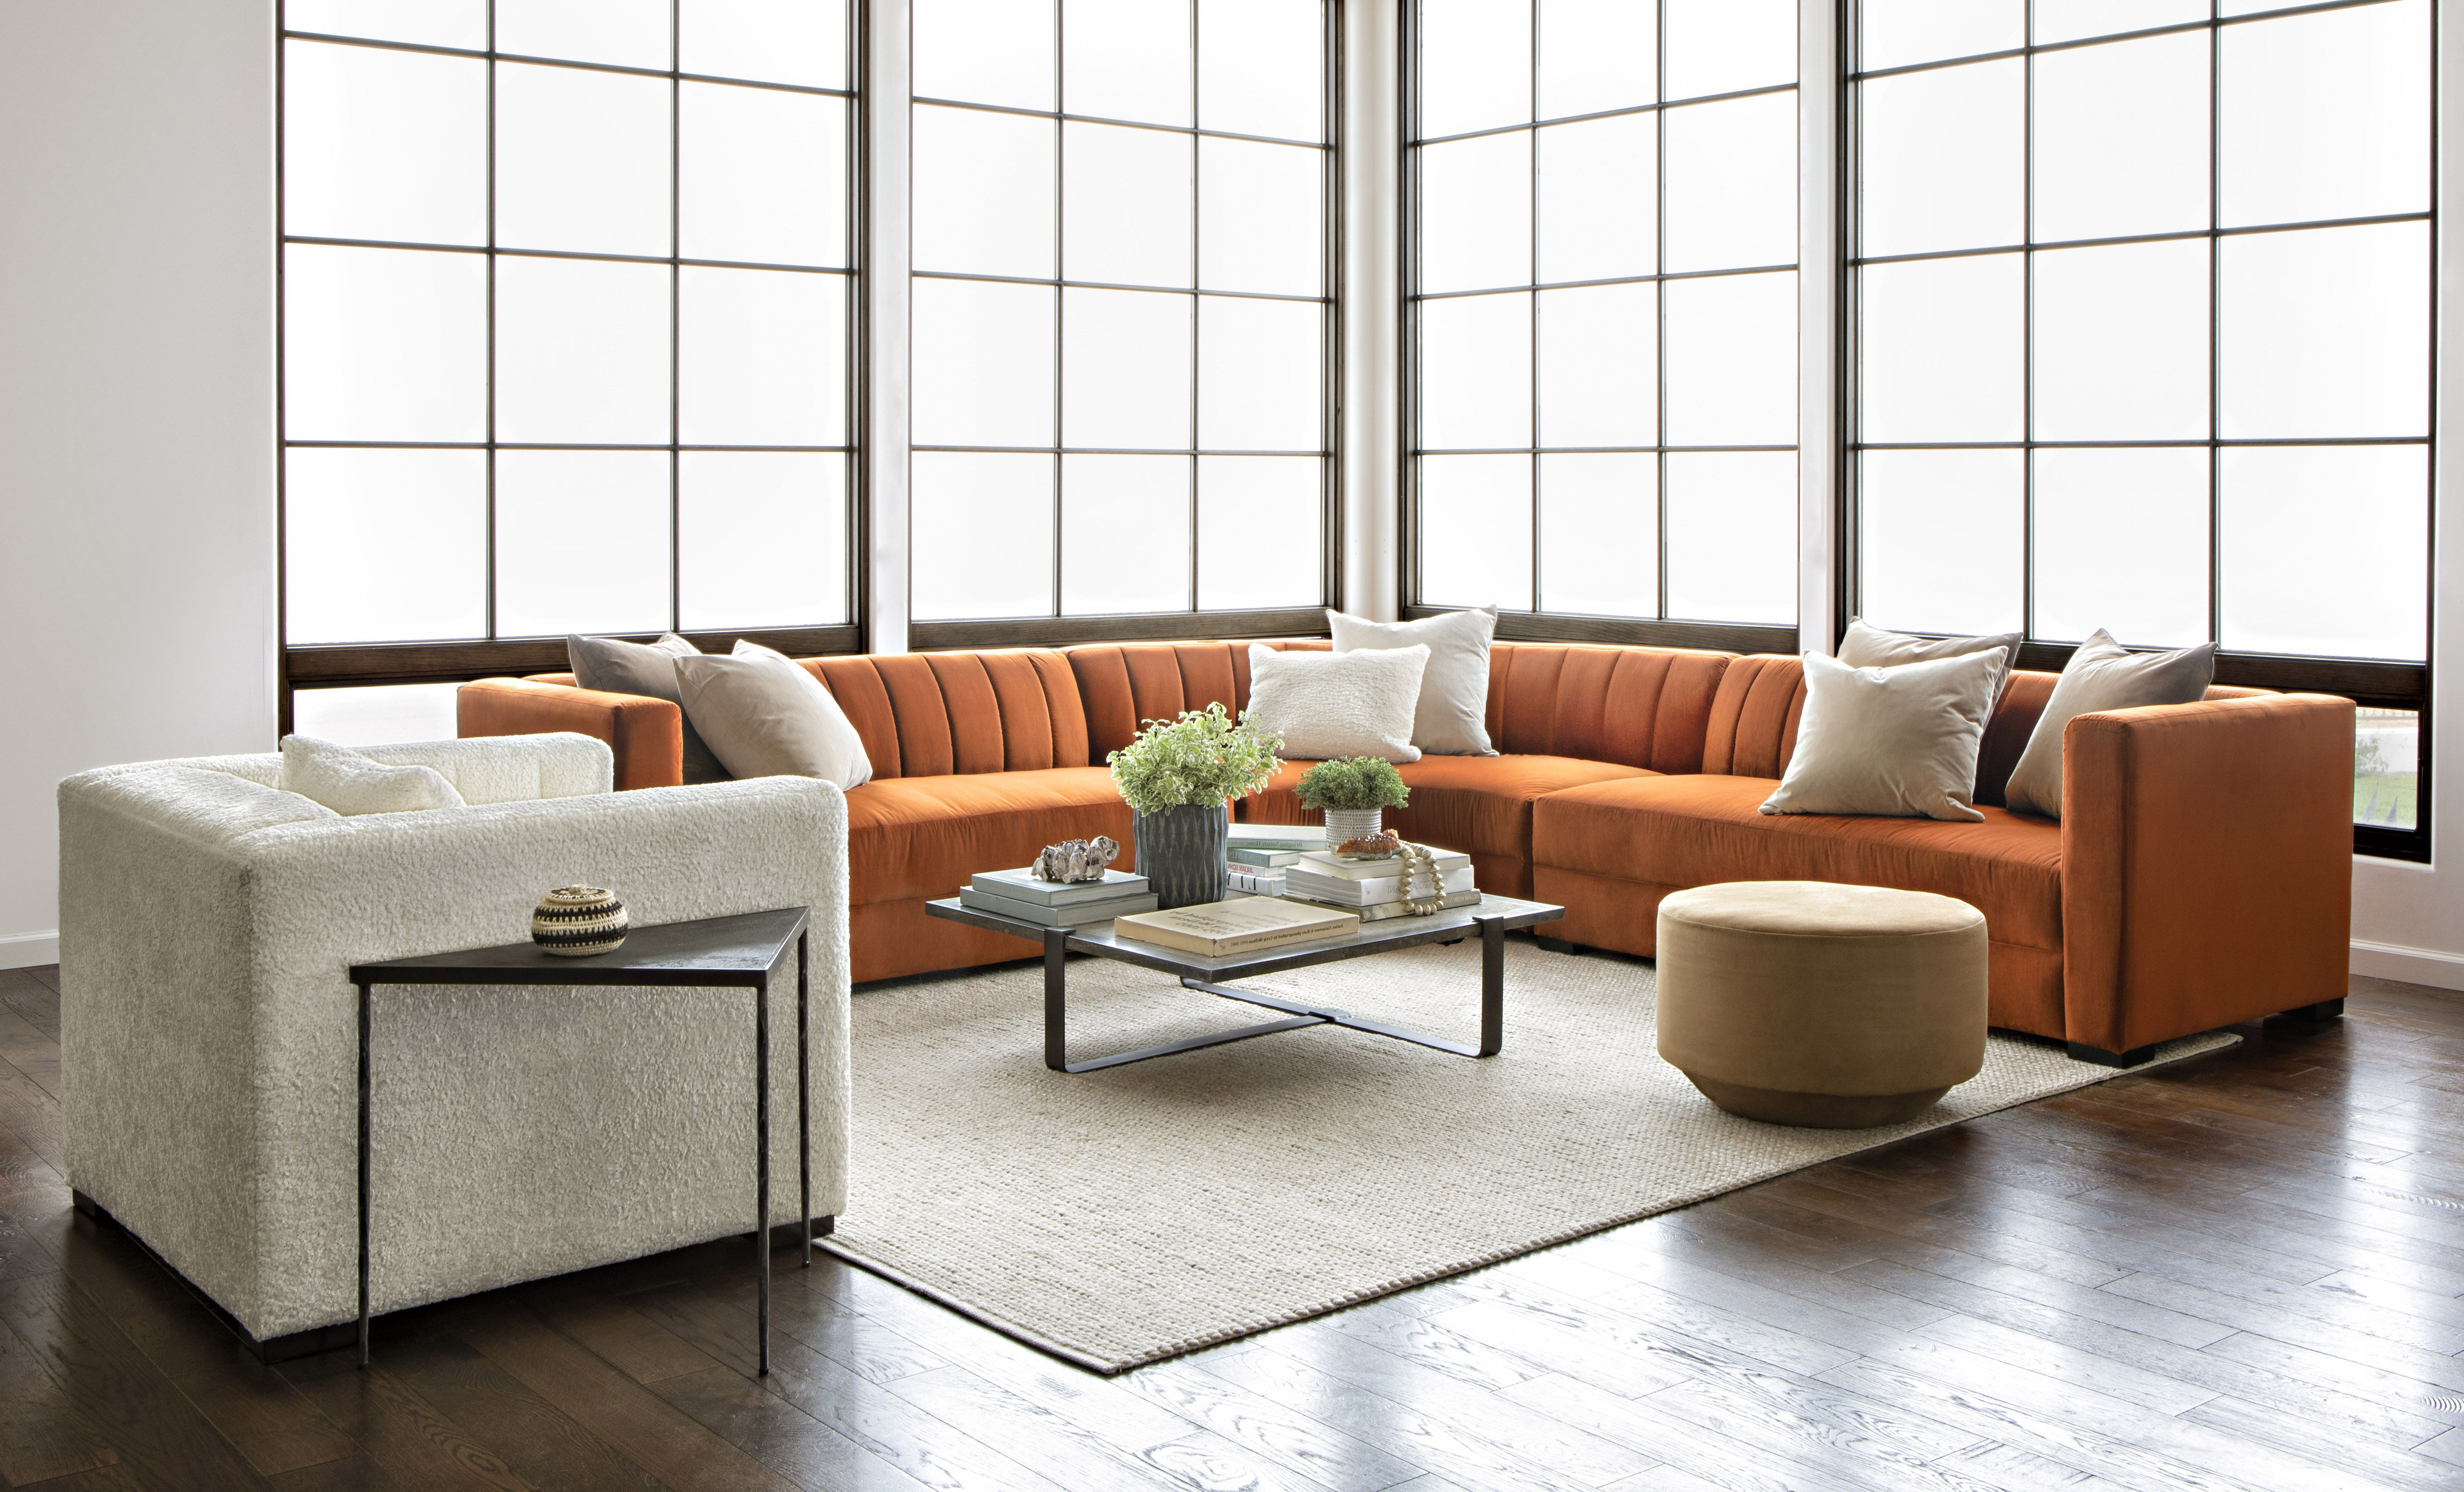 Recent Soane 3 Piece Sectionals By Nate Berkus And Jeremiah Brent With Regard To Soane 3 Piece Sectionalnate Berkus And Jeremiah Brent In (View 6 of 20)